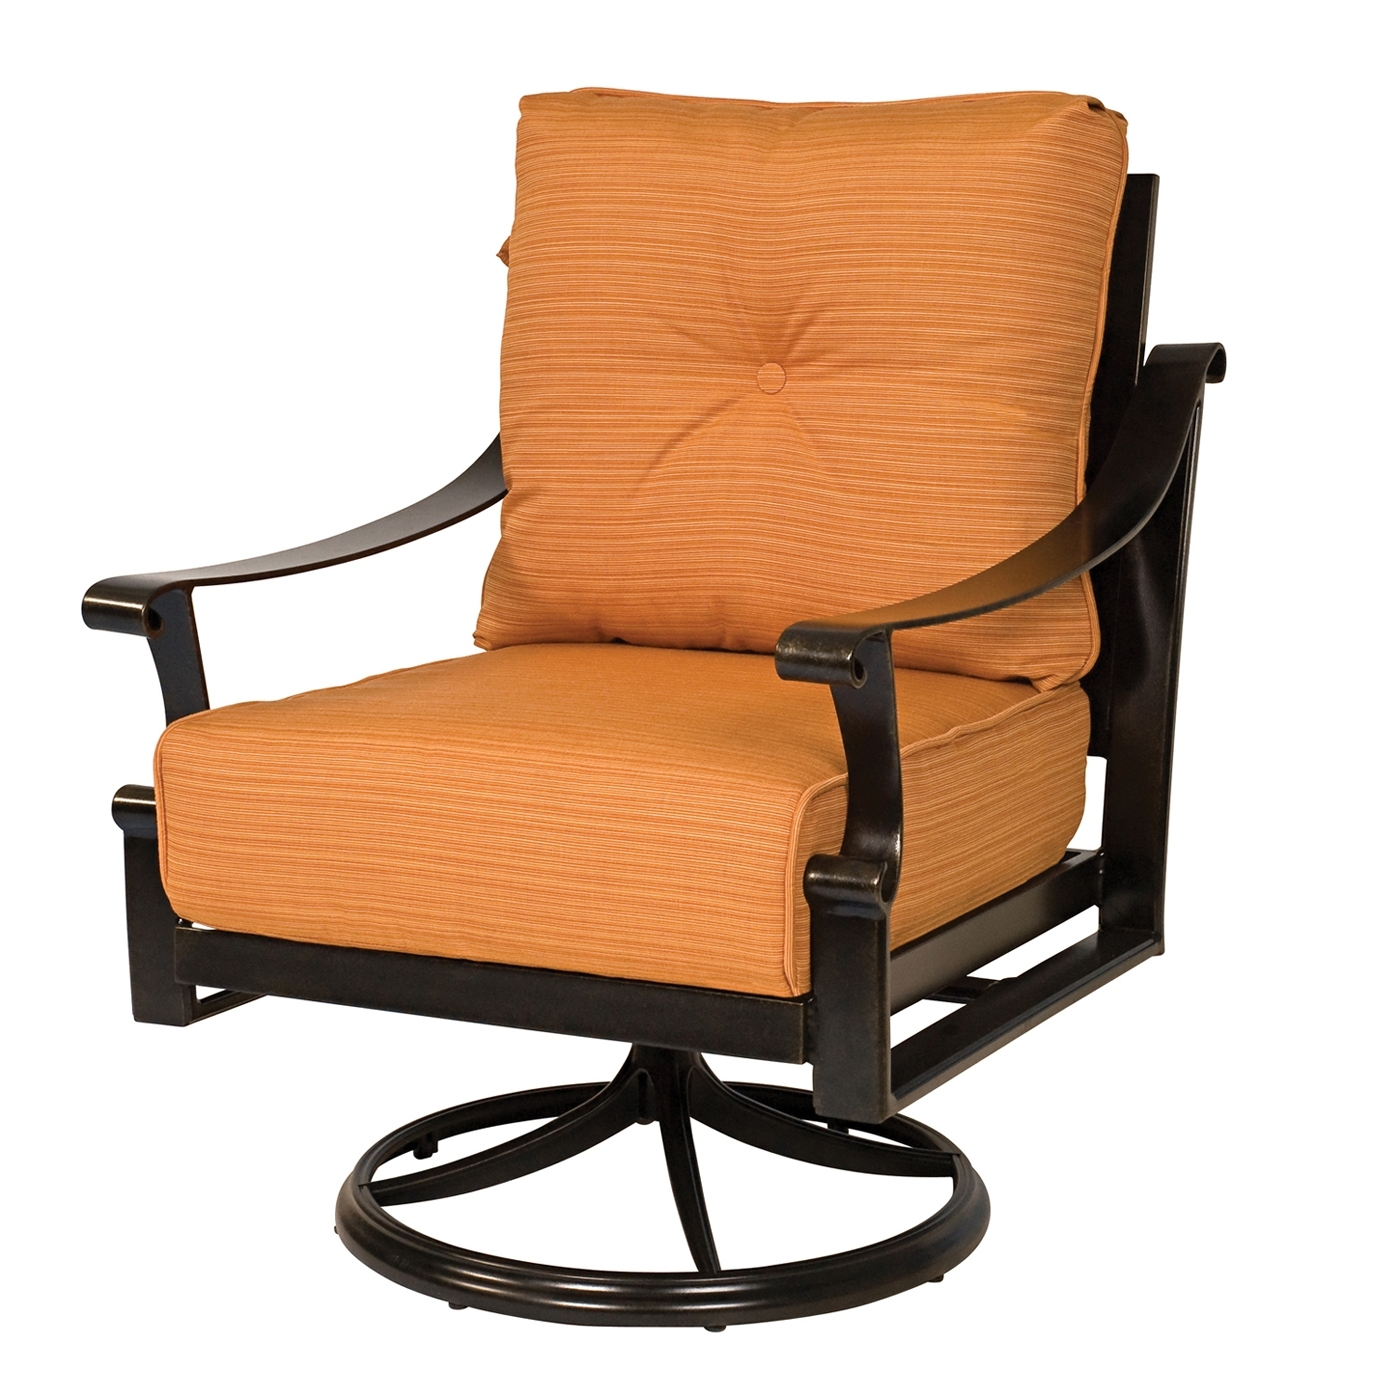 Most Current Inspirational Swivel Rocker Patio Chair Dmsgb Mauriciohm Outdoor Intended For Patio Rocking Chairs With Covers (View 3 of 20)